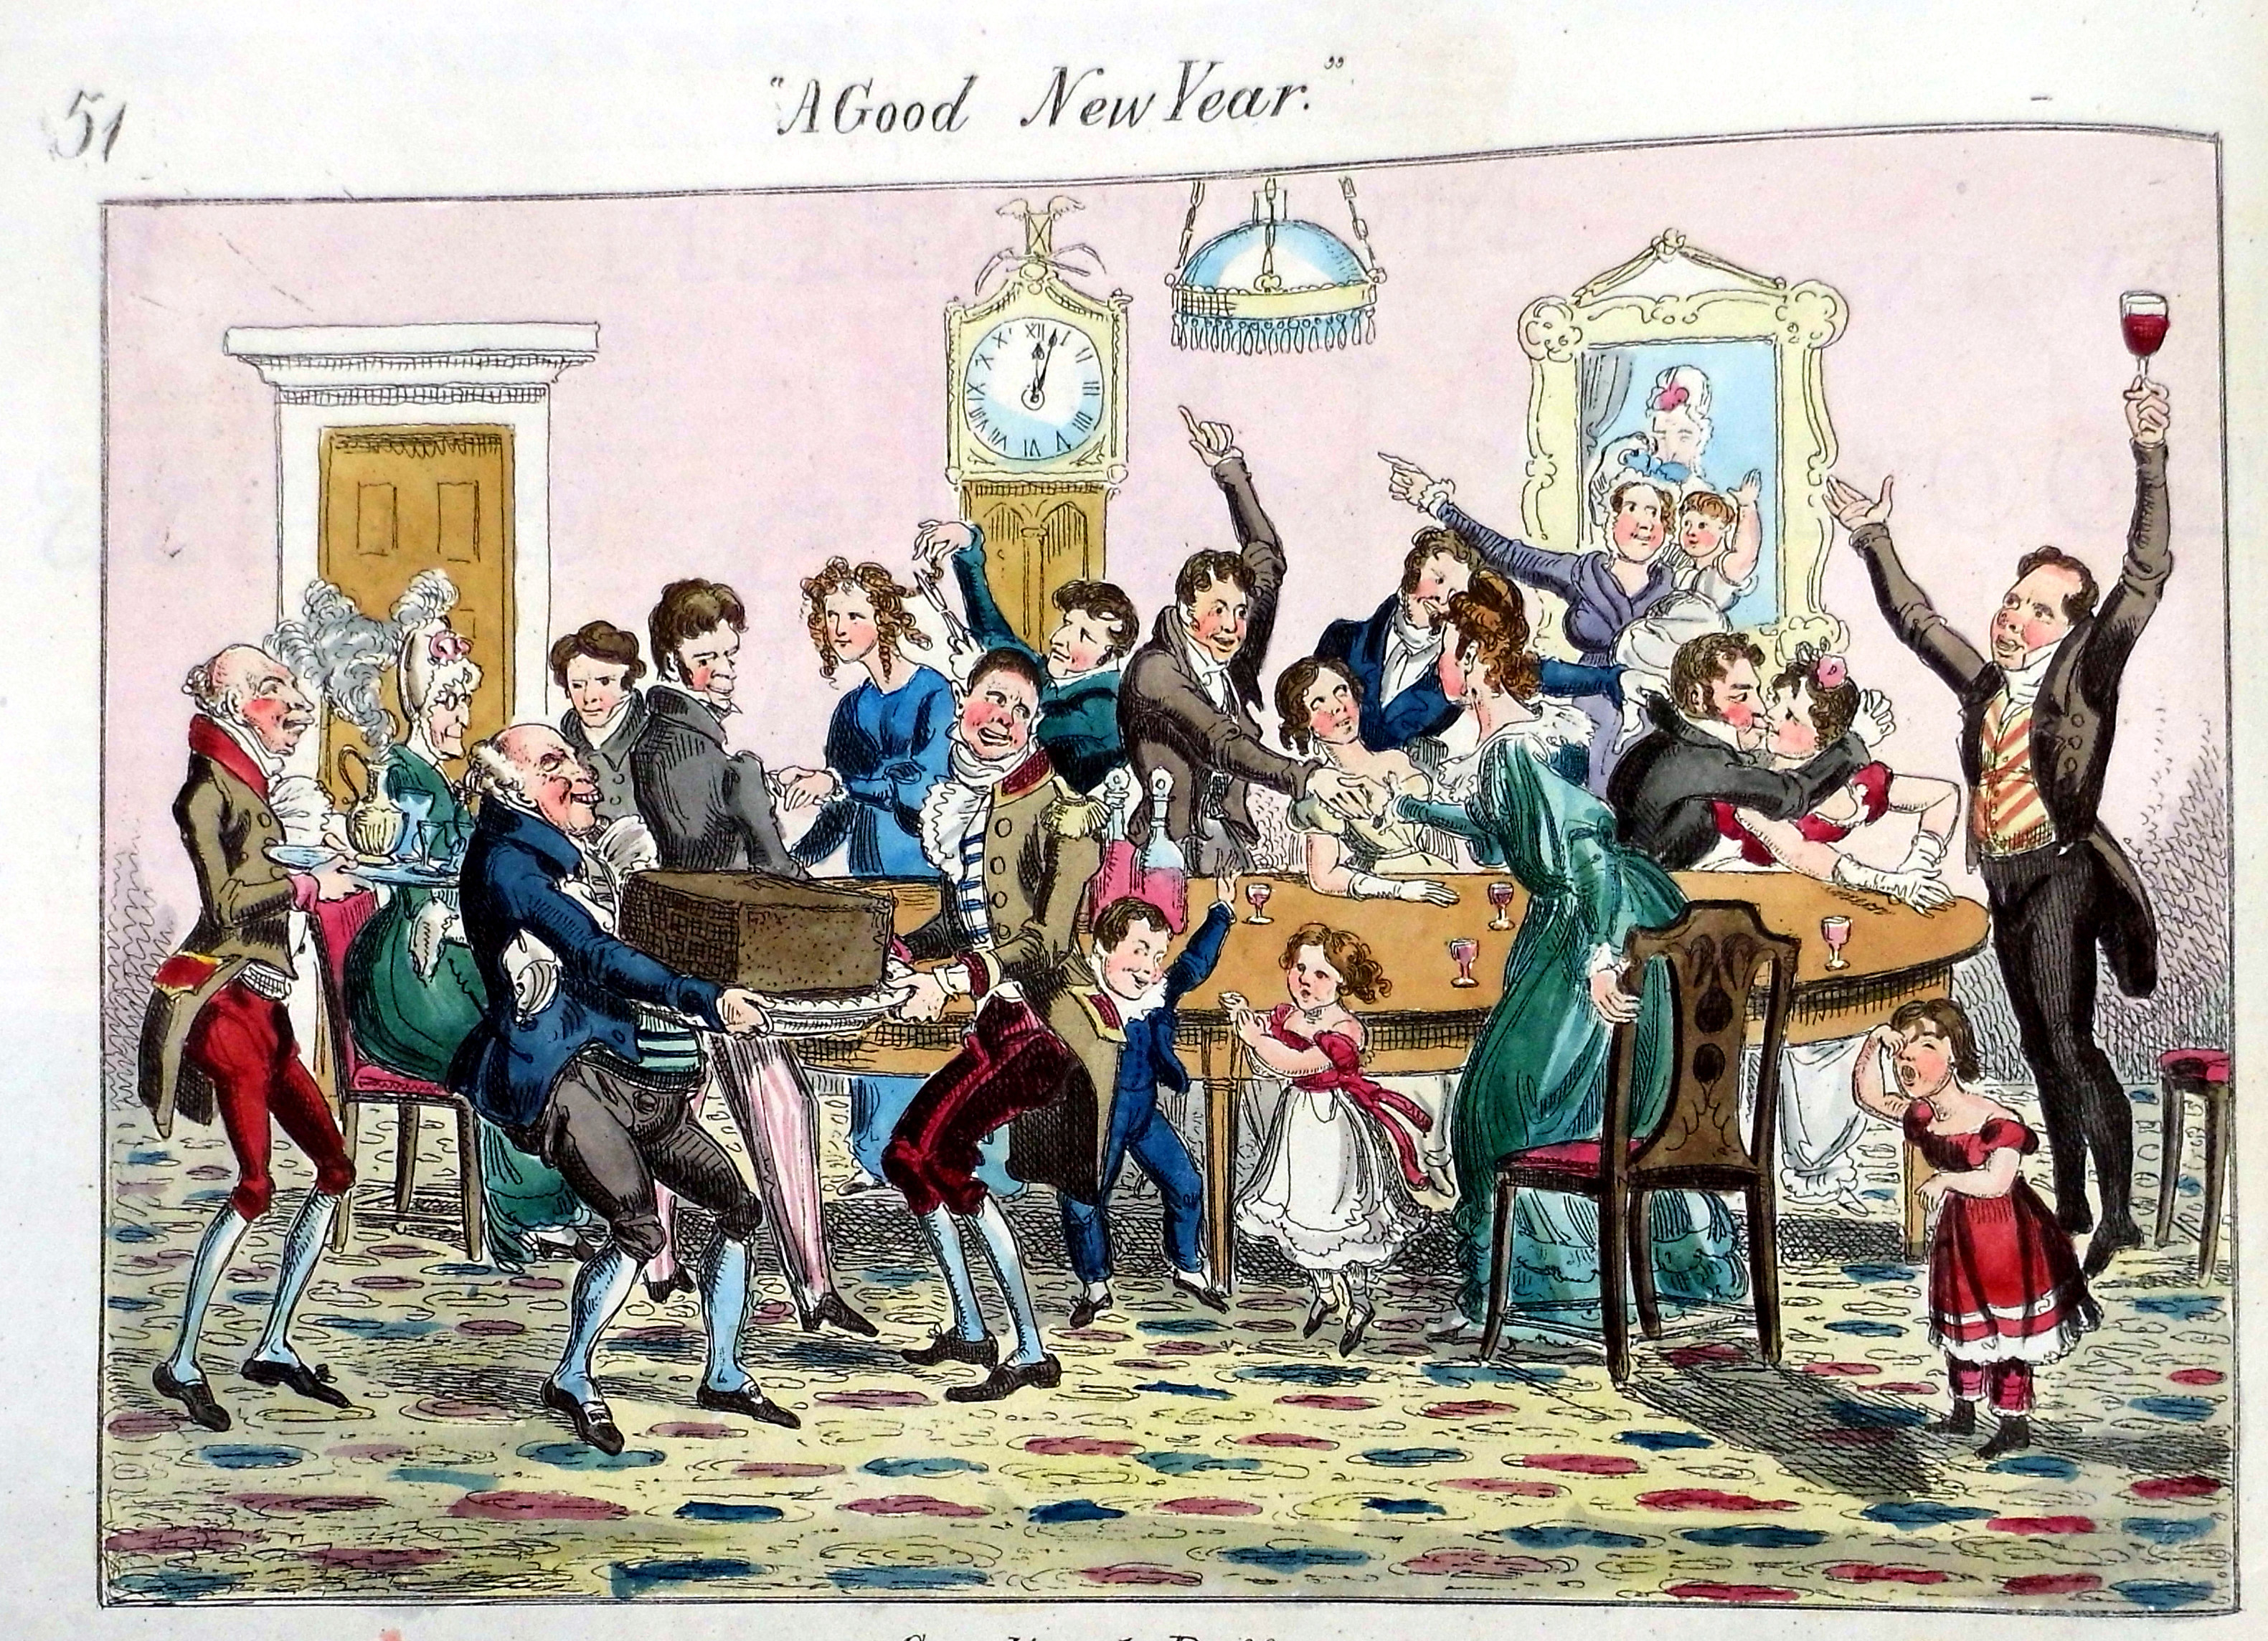 New Year through the  Northern  Looking Glass     University of      A Good New Year   Northern Looking Glass  Sp Coll Bh14 x